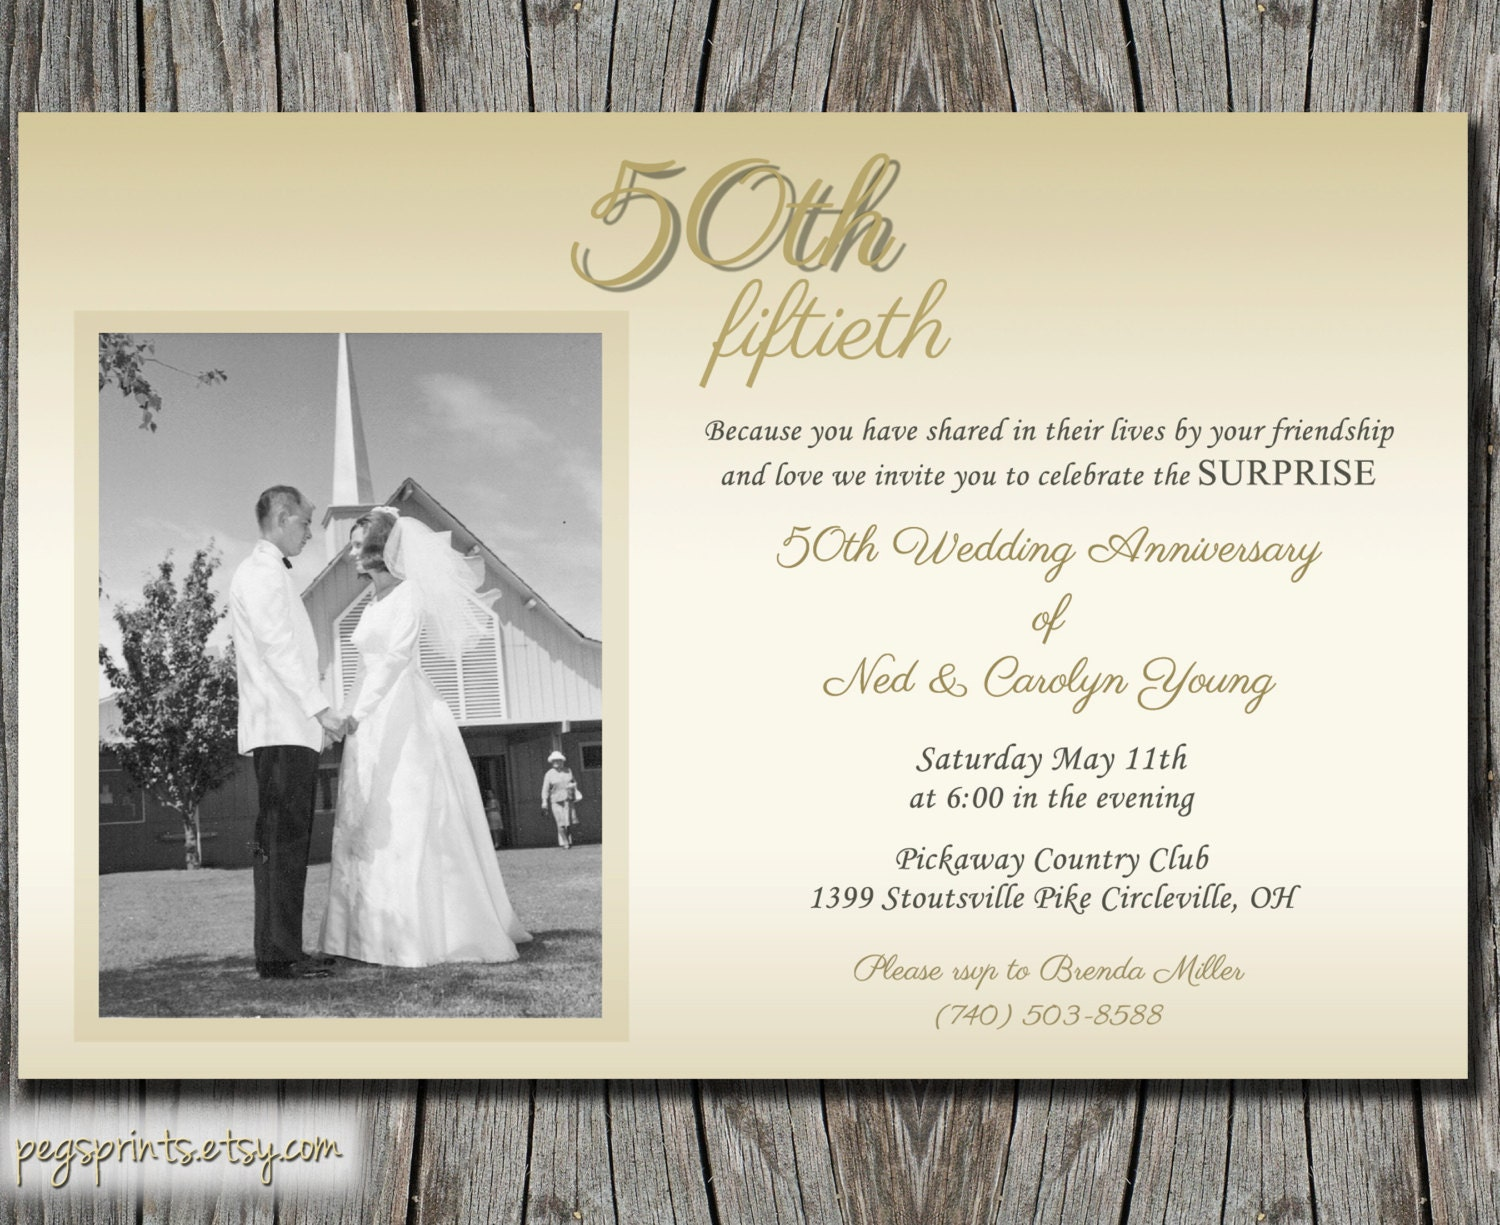 50th Wedding Anniversary Invitation Ideas: Surprise Wedding Anniversary Invitation 50th By PegsPrints